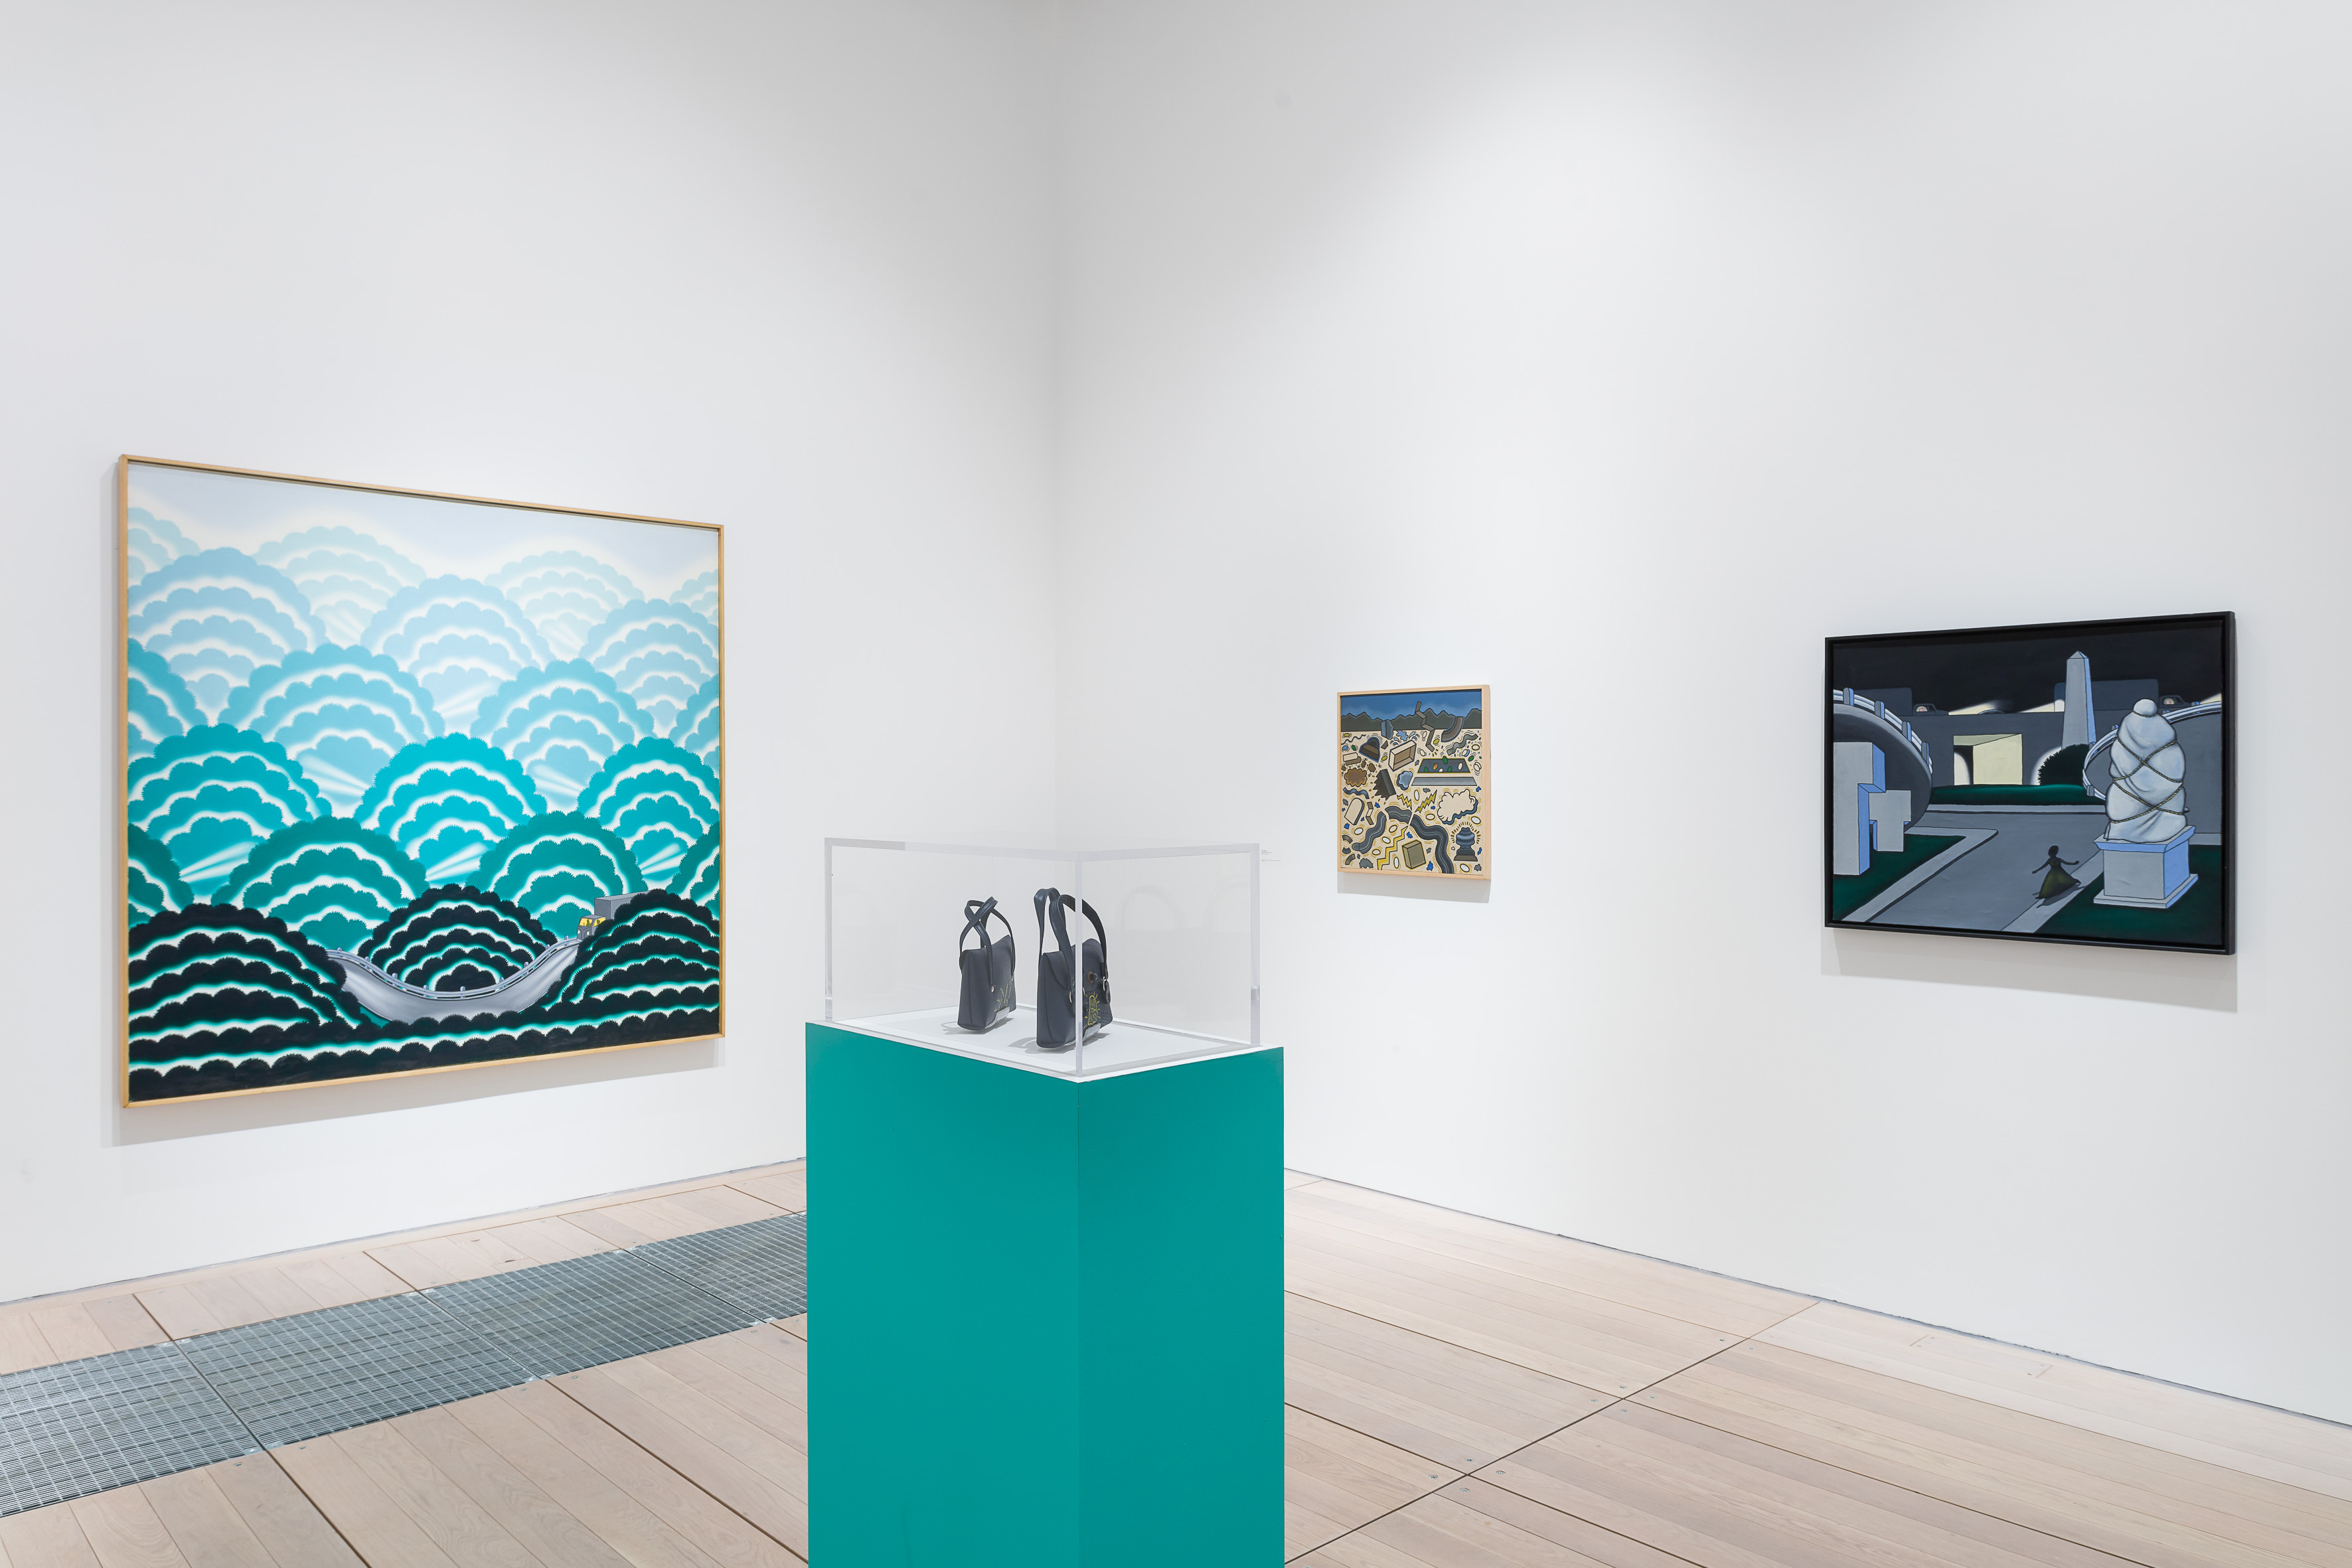 How Chicago! Imagists 1960s and 70s - The White Review